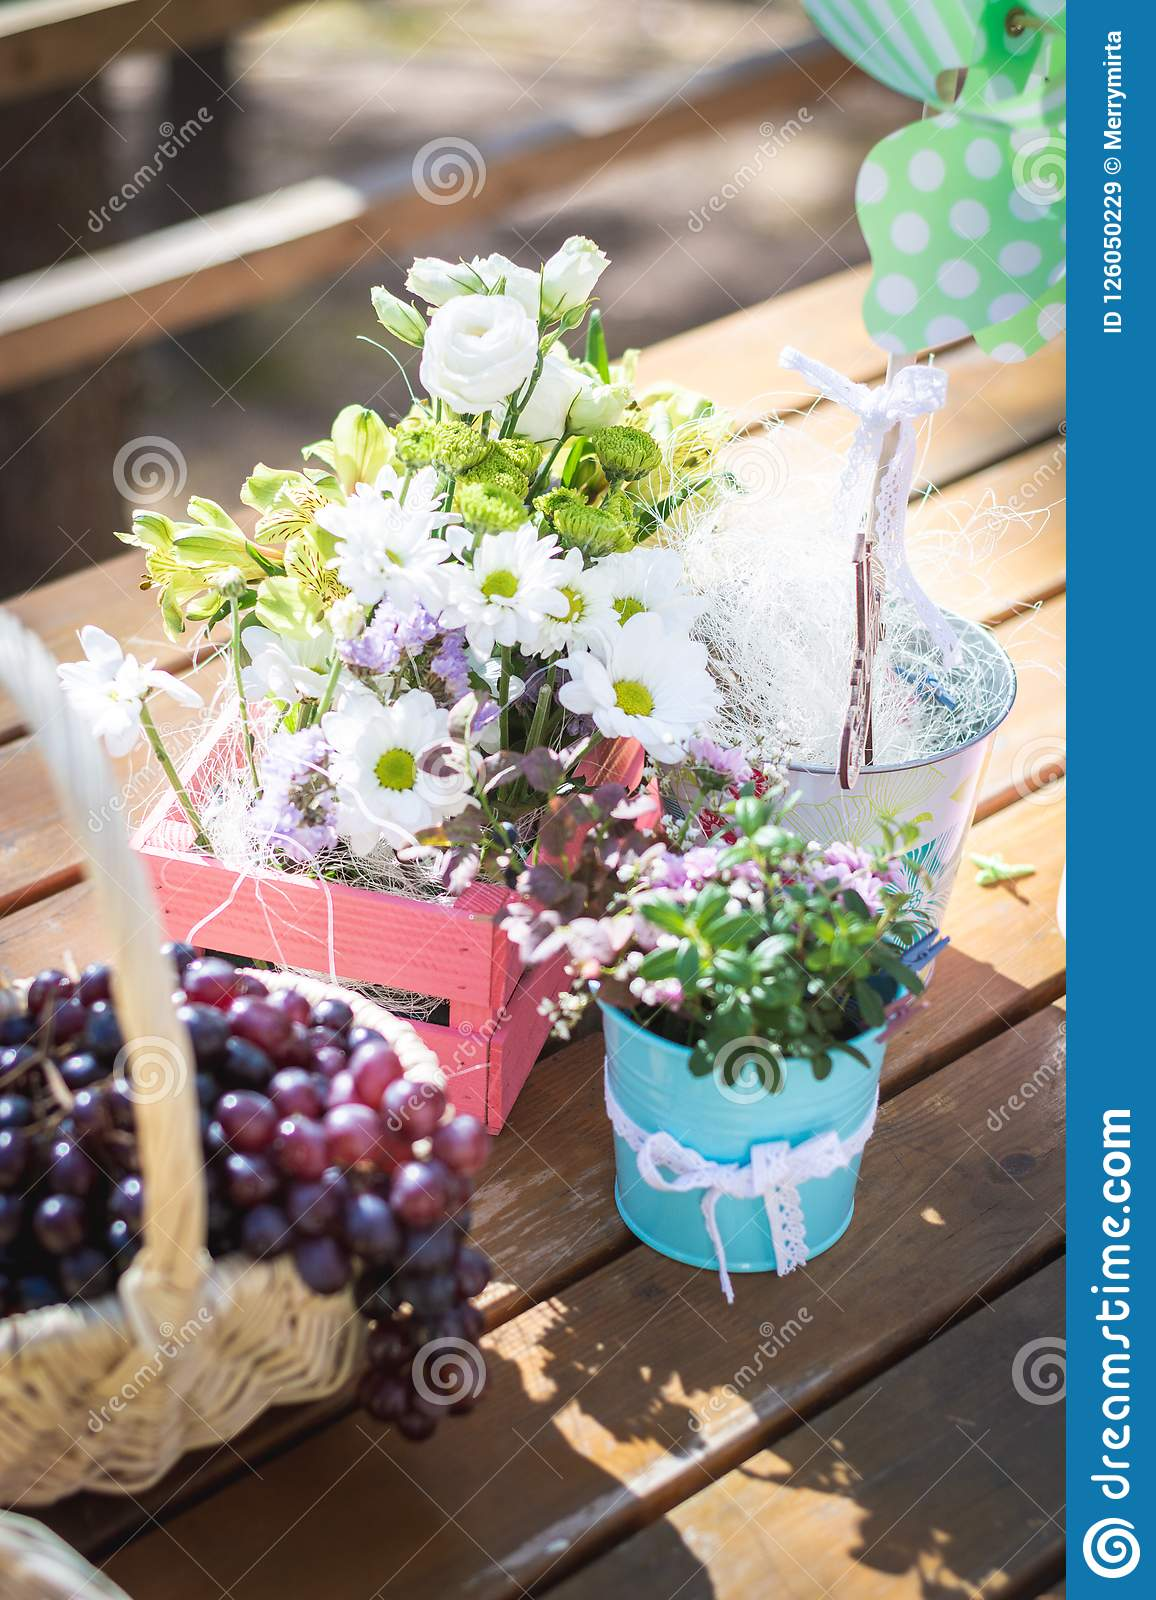 Picnic Party Table Decoration Baskets With Fruits On A Wooden Table Flowers Pink Small Guitar And Pinwheel Stock Image Image Of Juicy Fall 126050229